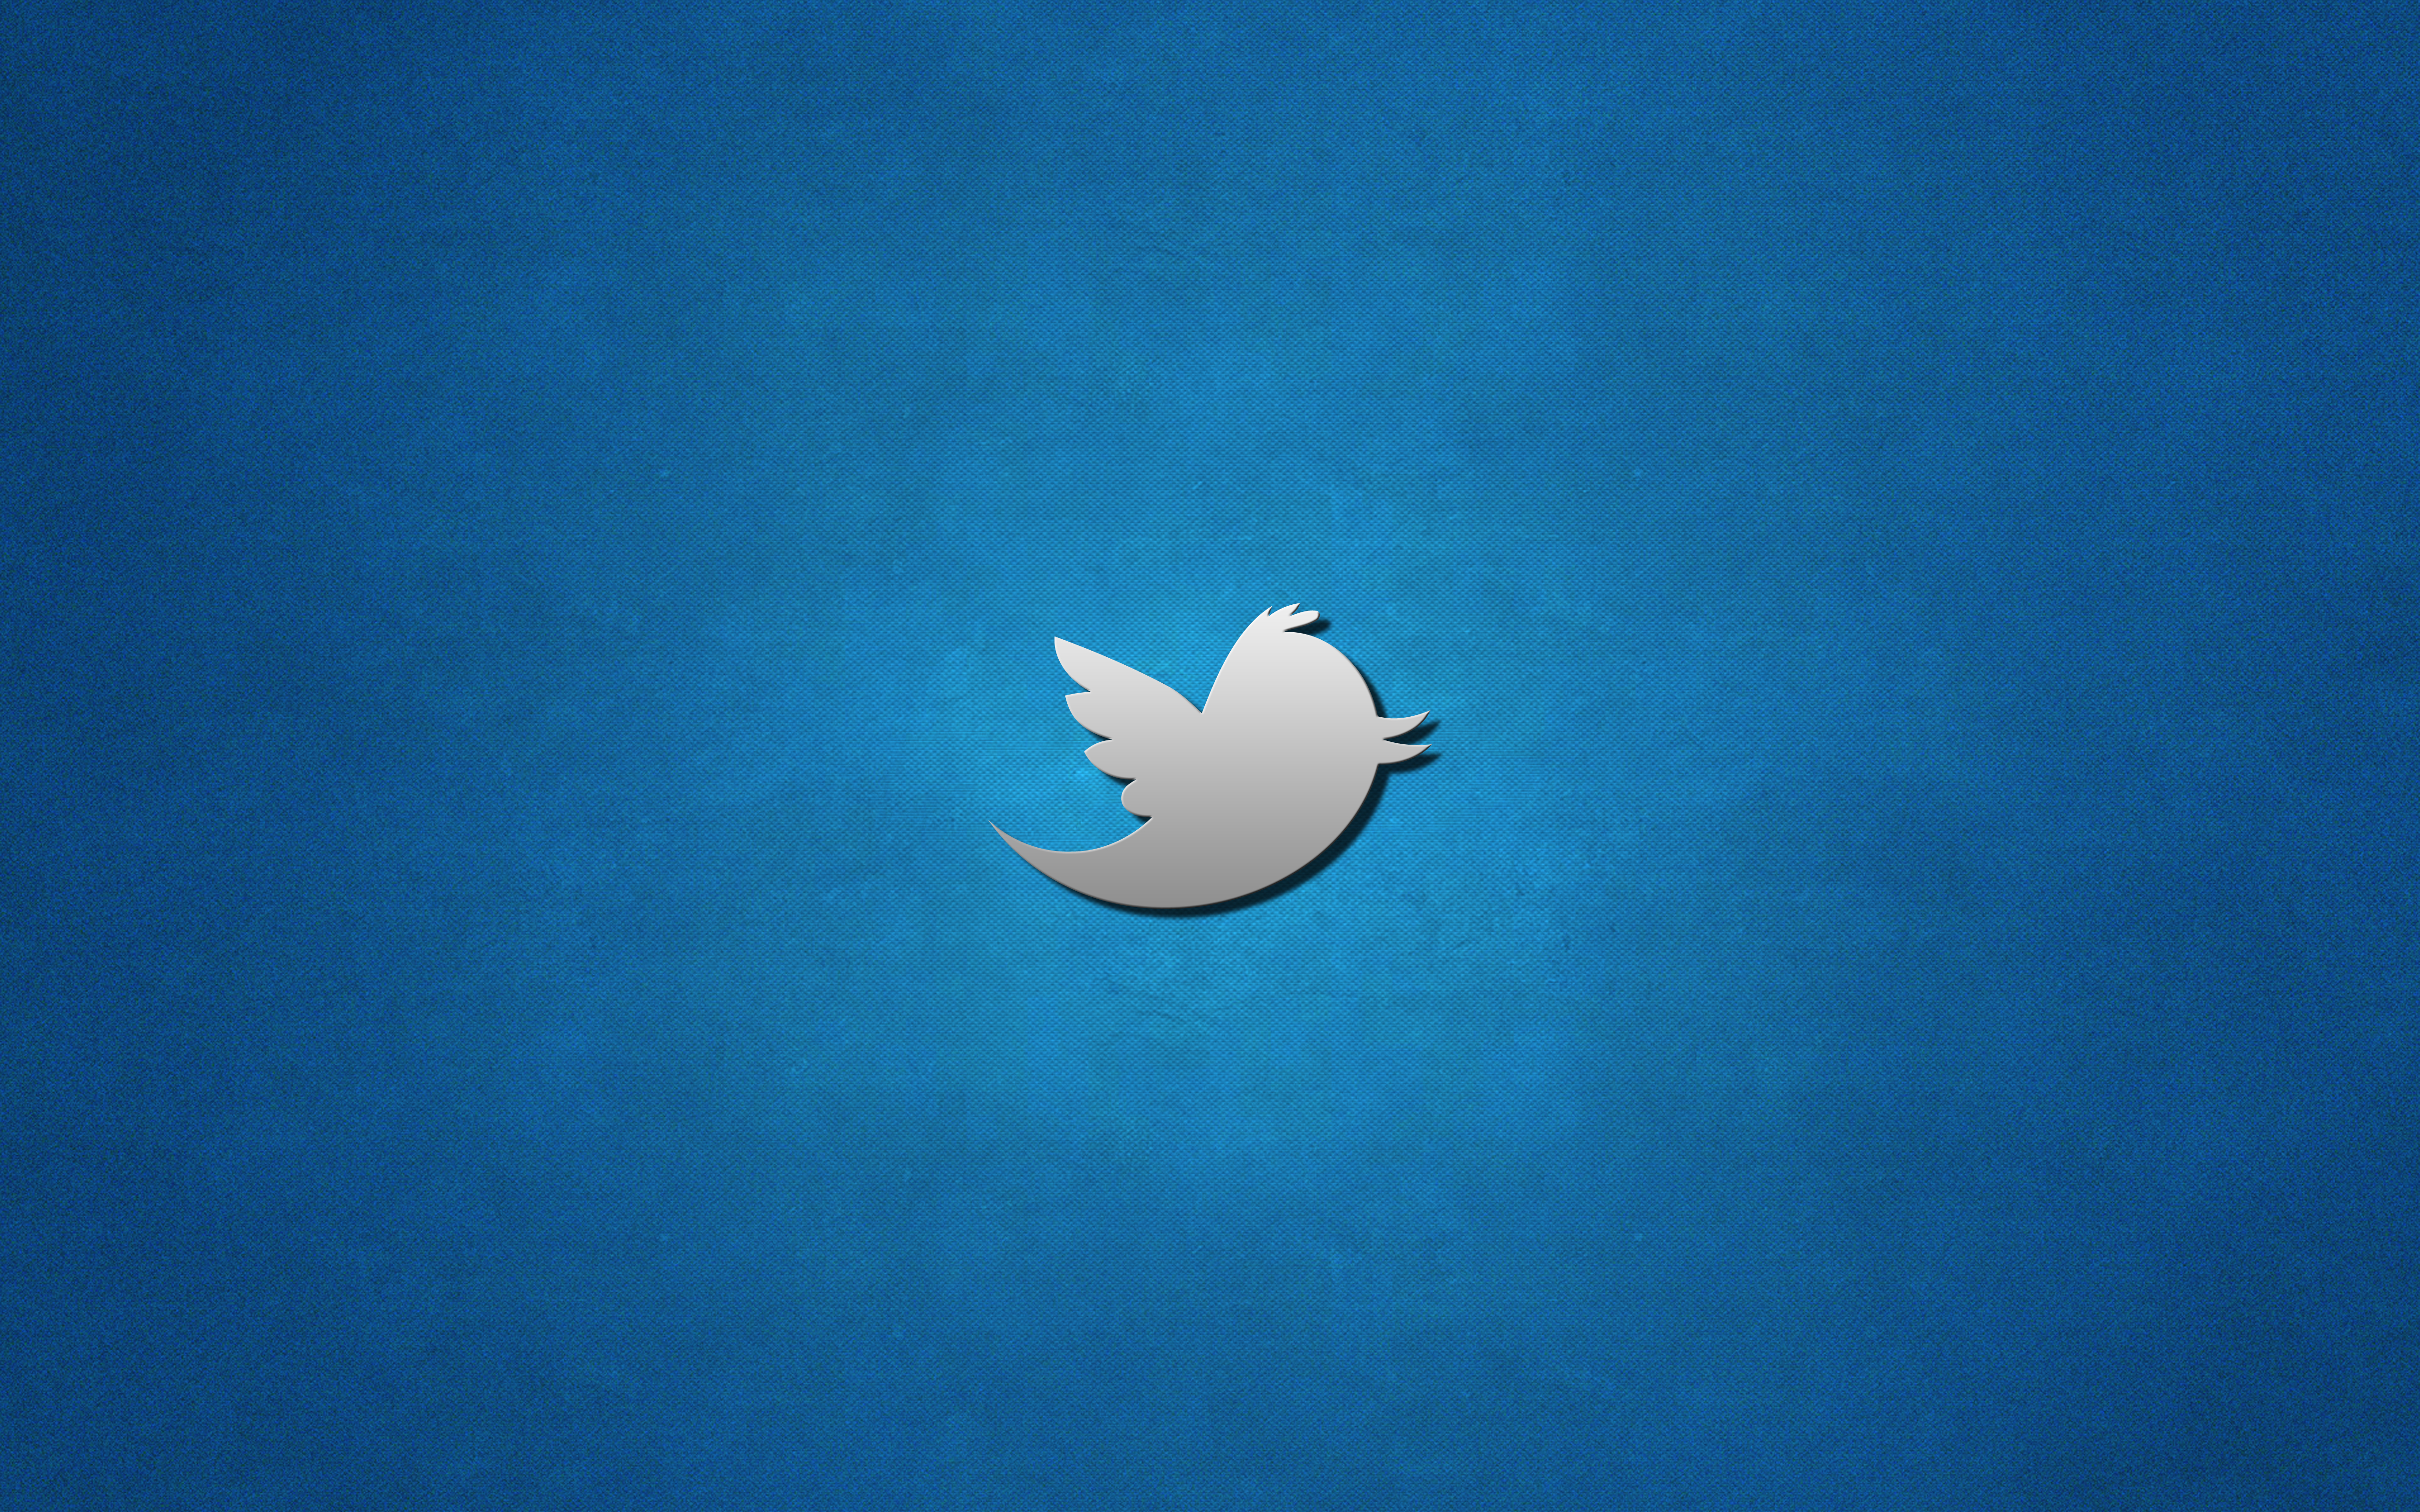 Outstanding Twitter Logo Hd Wide Desktop Wallpaper 5120x3200px